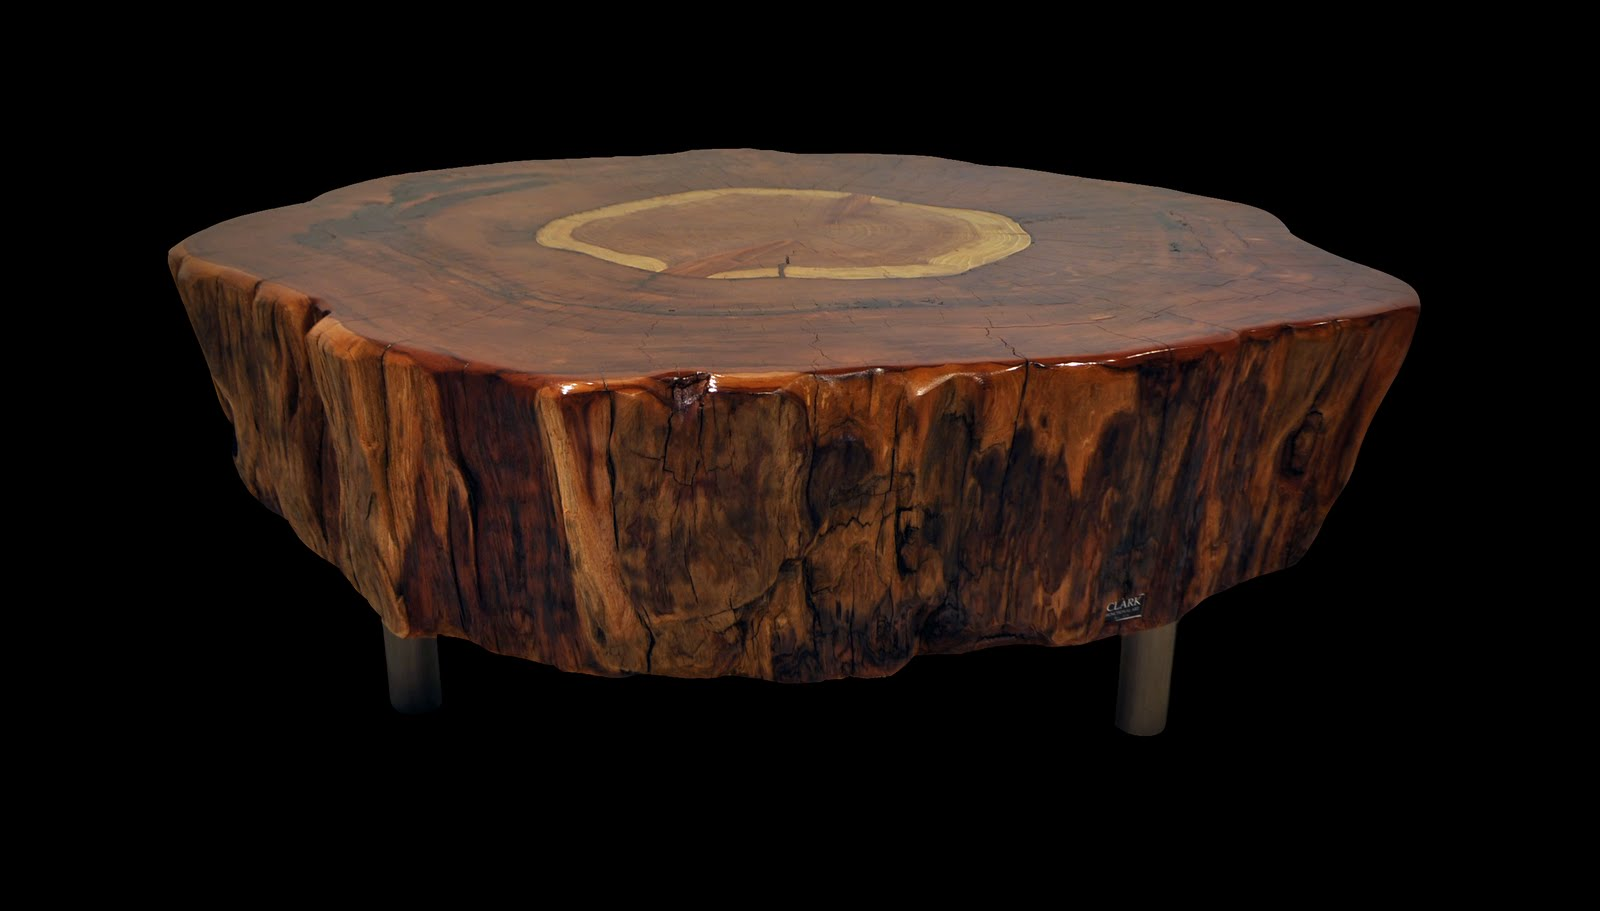 Round Trunk Coffee Table Reclaimed Tree Stump Coffee Table (Image 8 of 10)